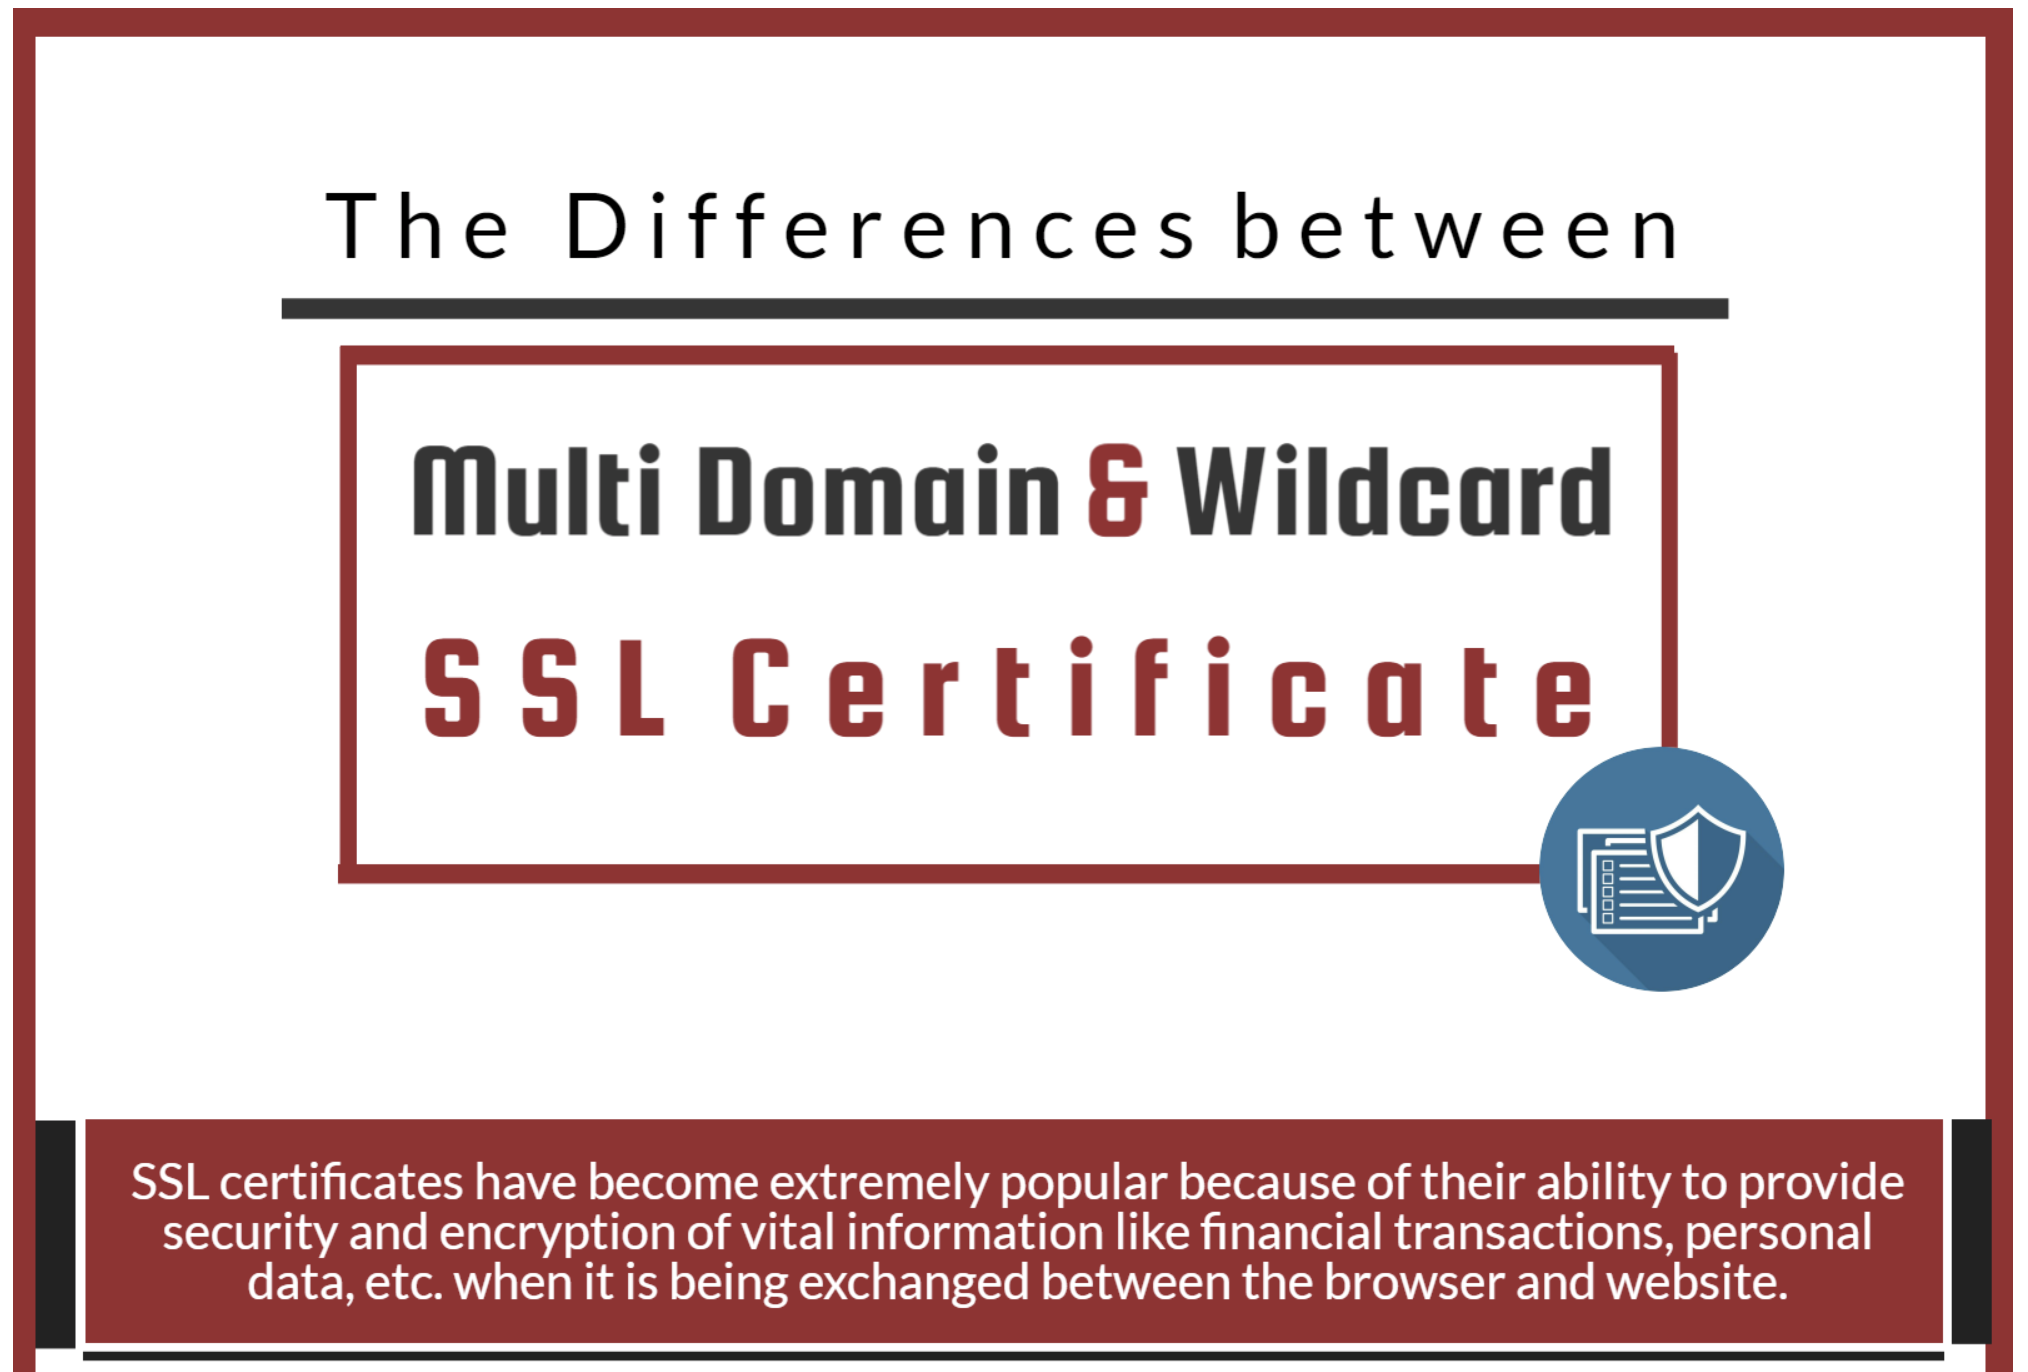 The Differences between Multi Domain and Wildcard SSL Certificate